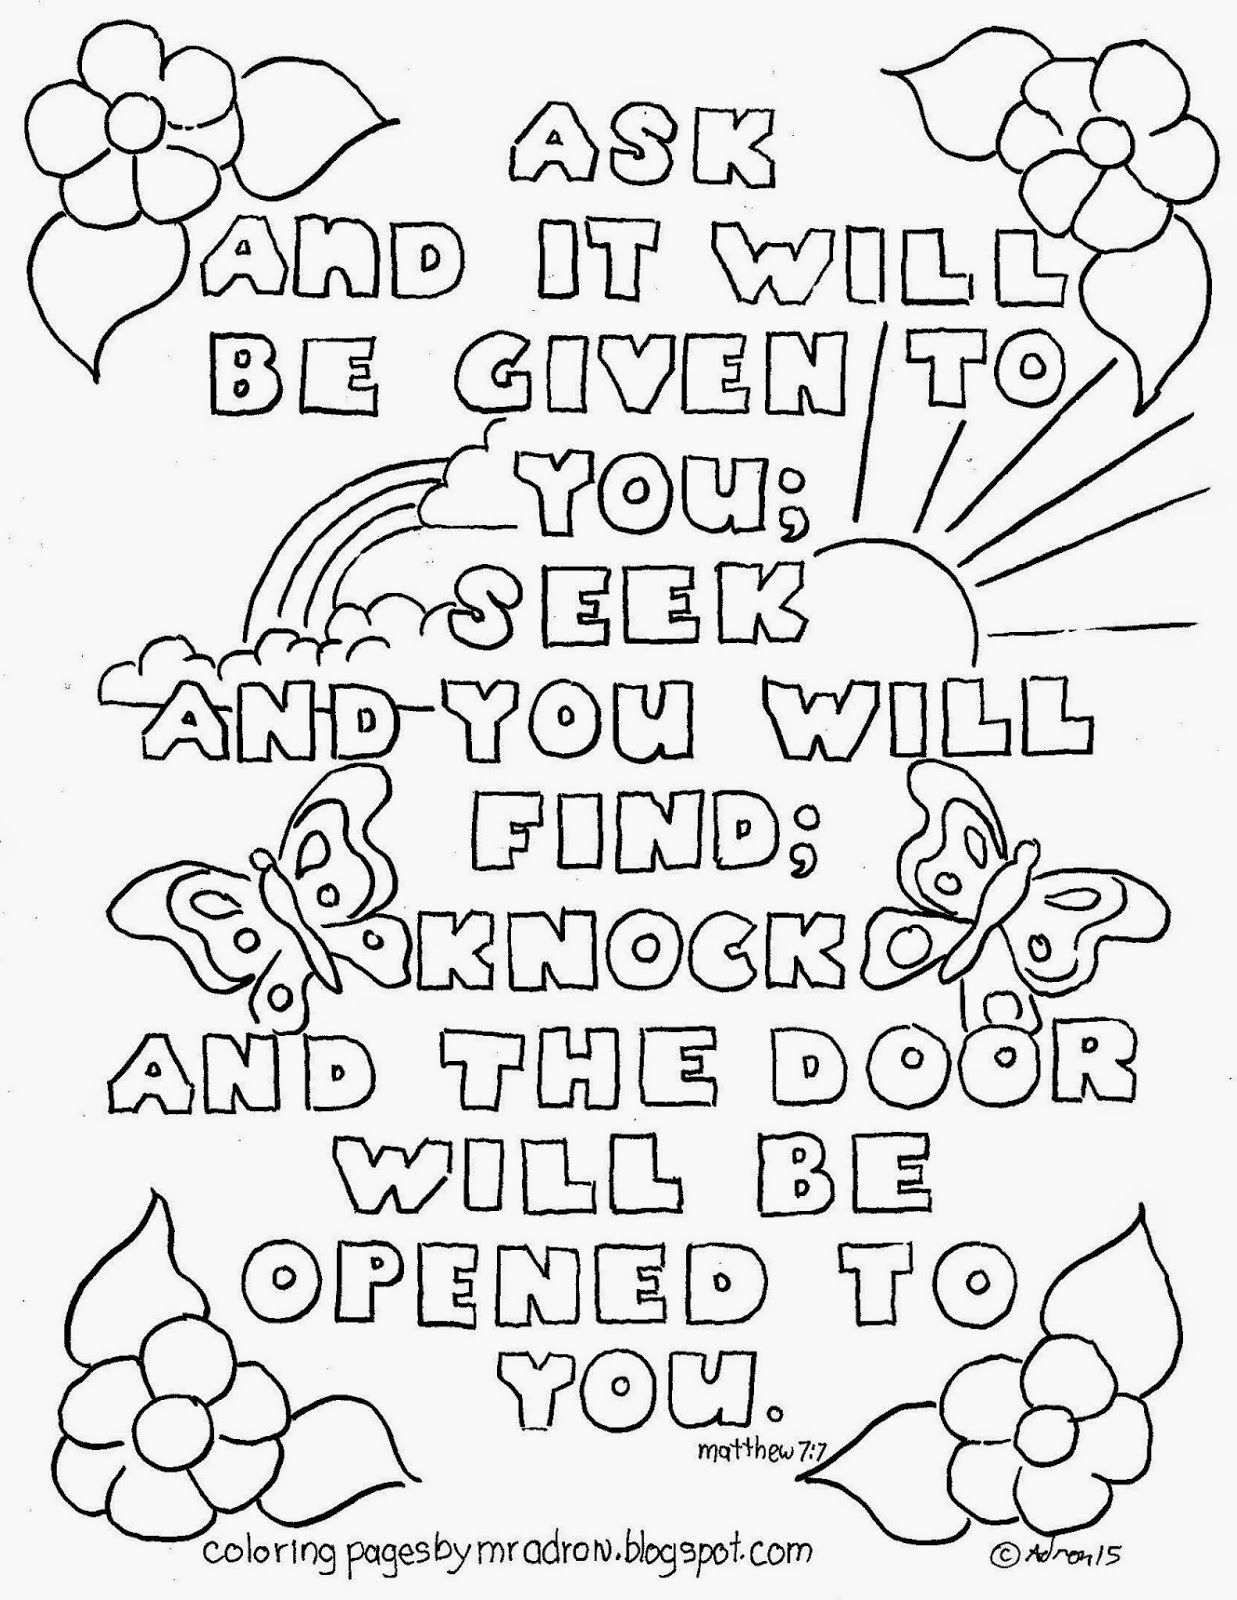 Coloring pages for john 9 - Bible Verse Matthew 7 7 Coloring Page See More At My Blog Http